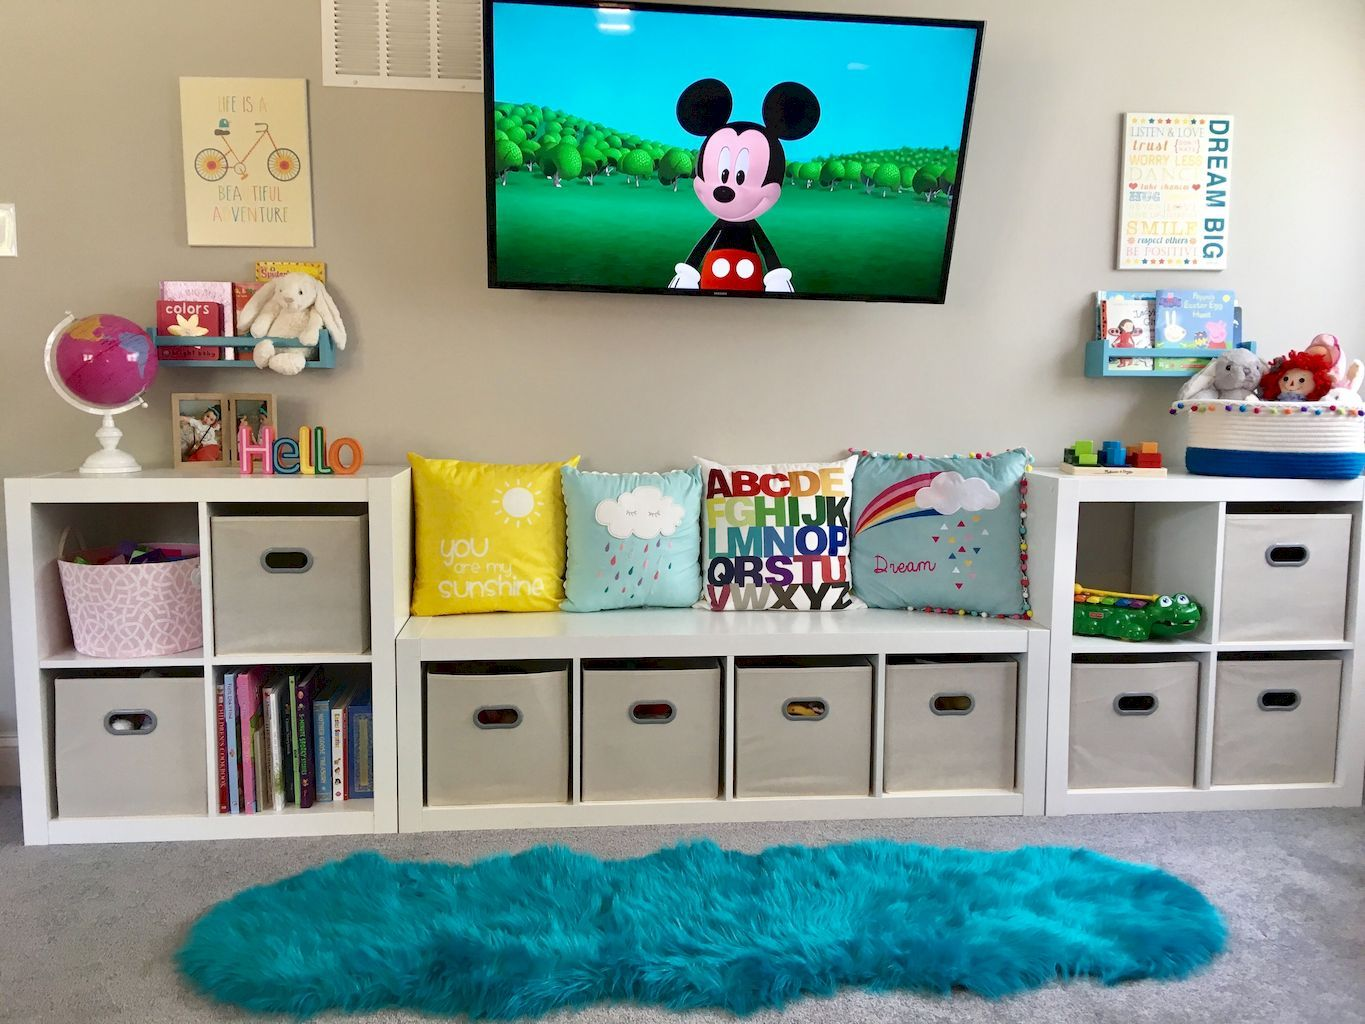 55 Clever Kids Bedroom Organization and Tips Ideas images